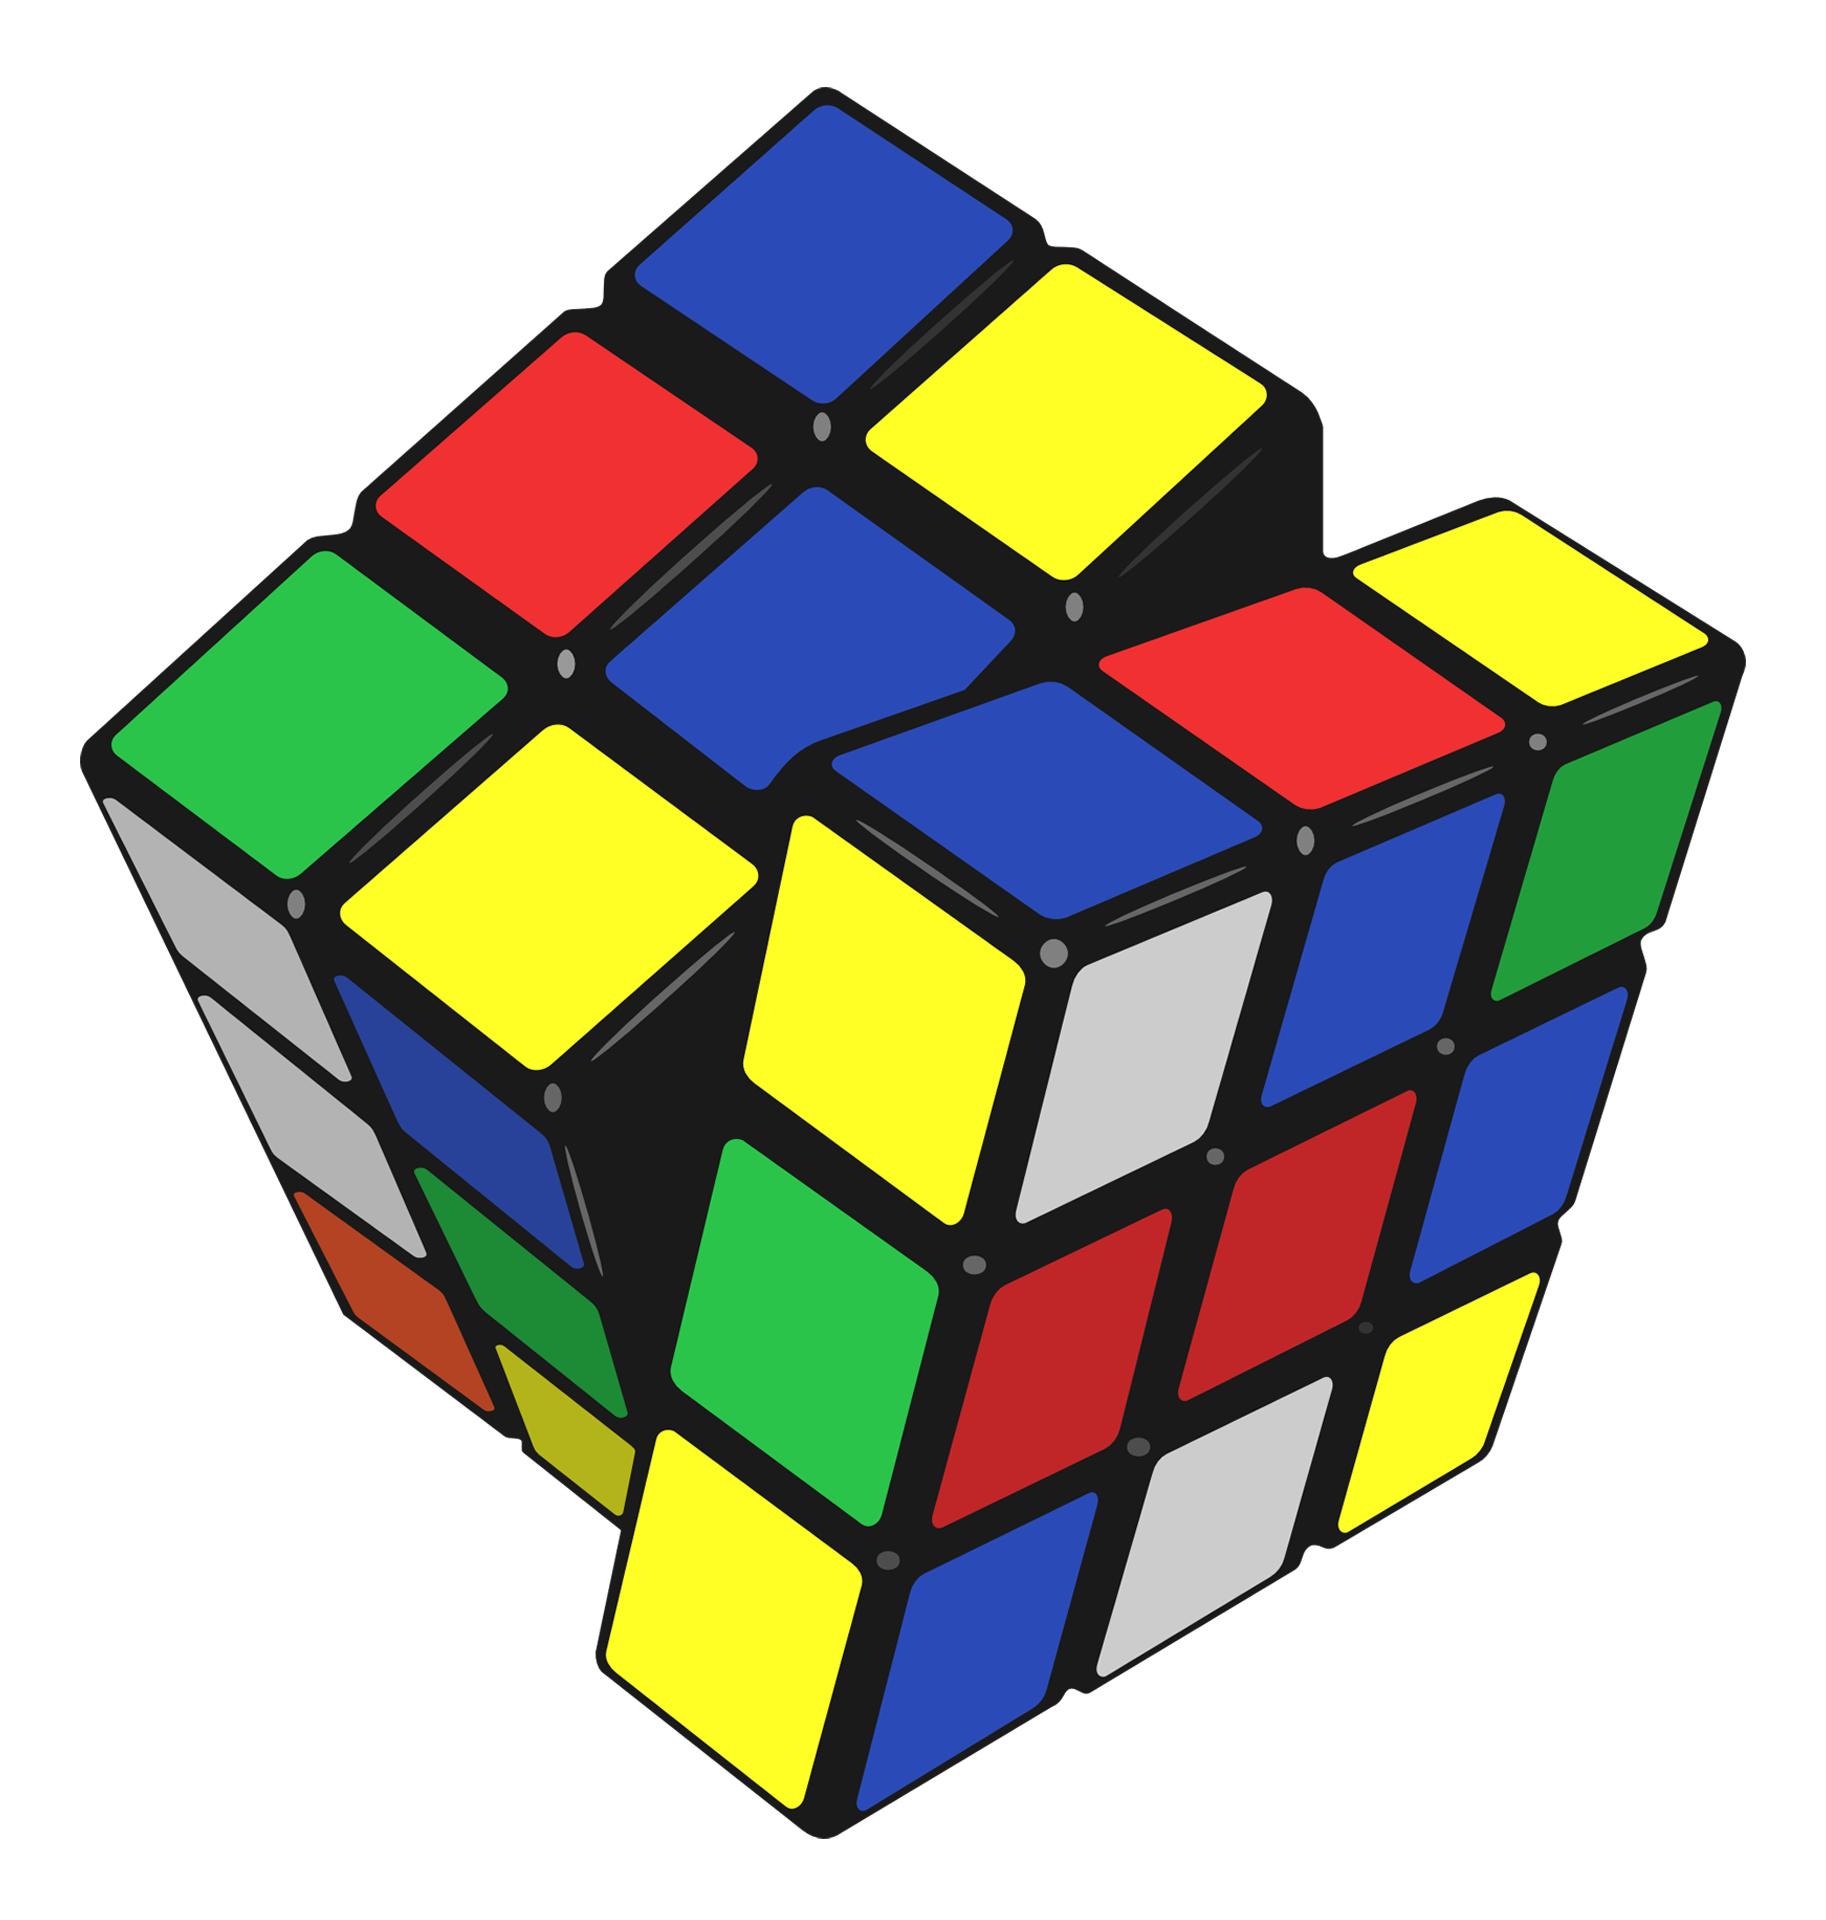 Cube PNG - 23187